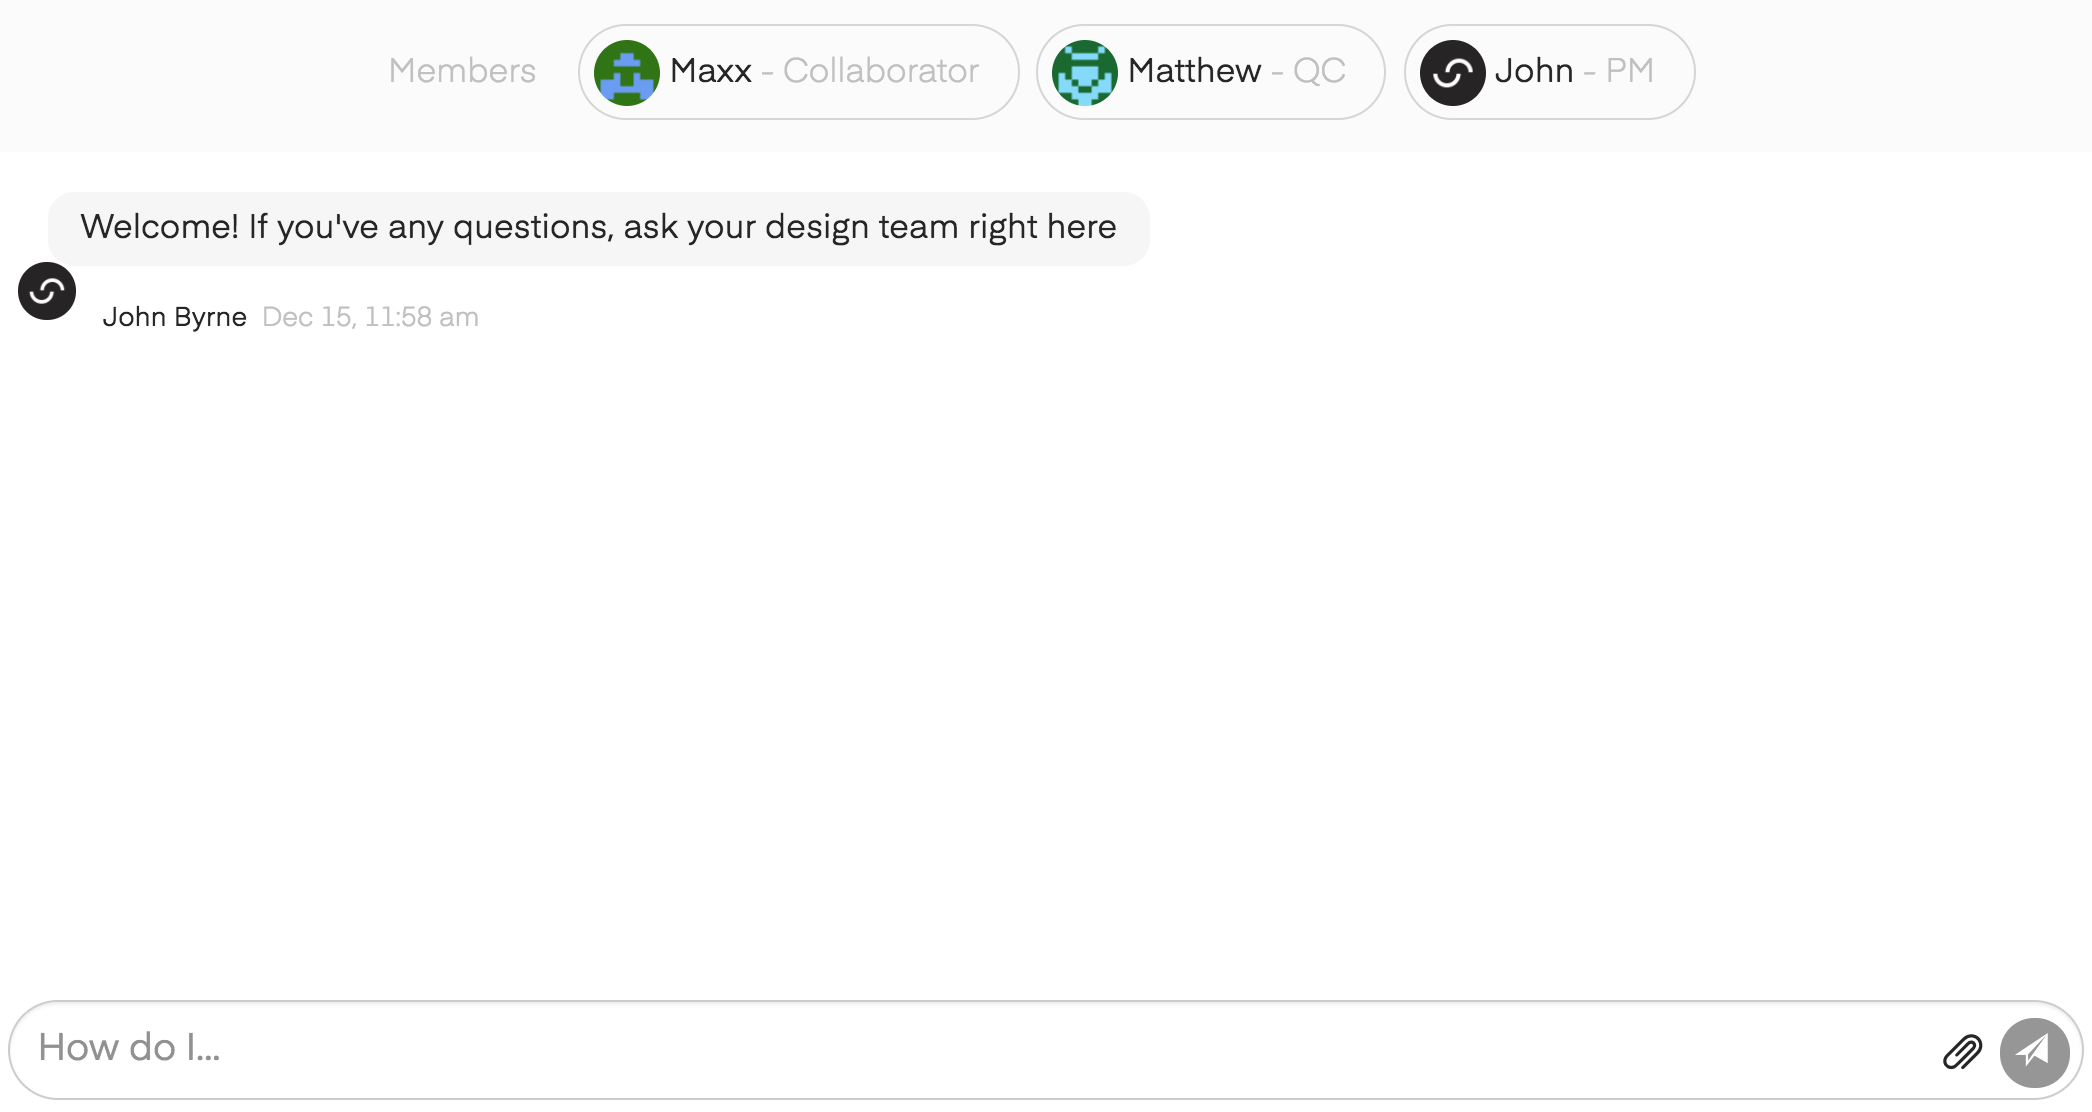 Chatting with SketchDeck image